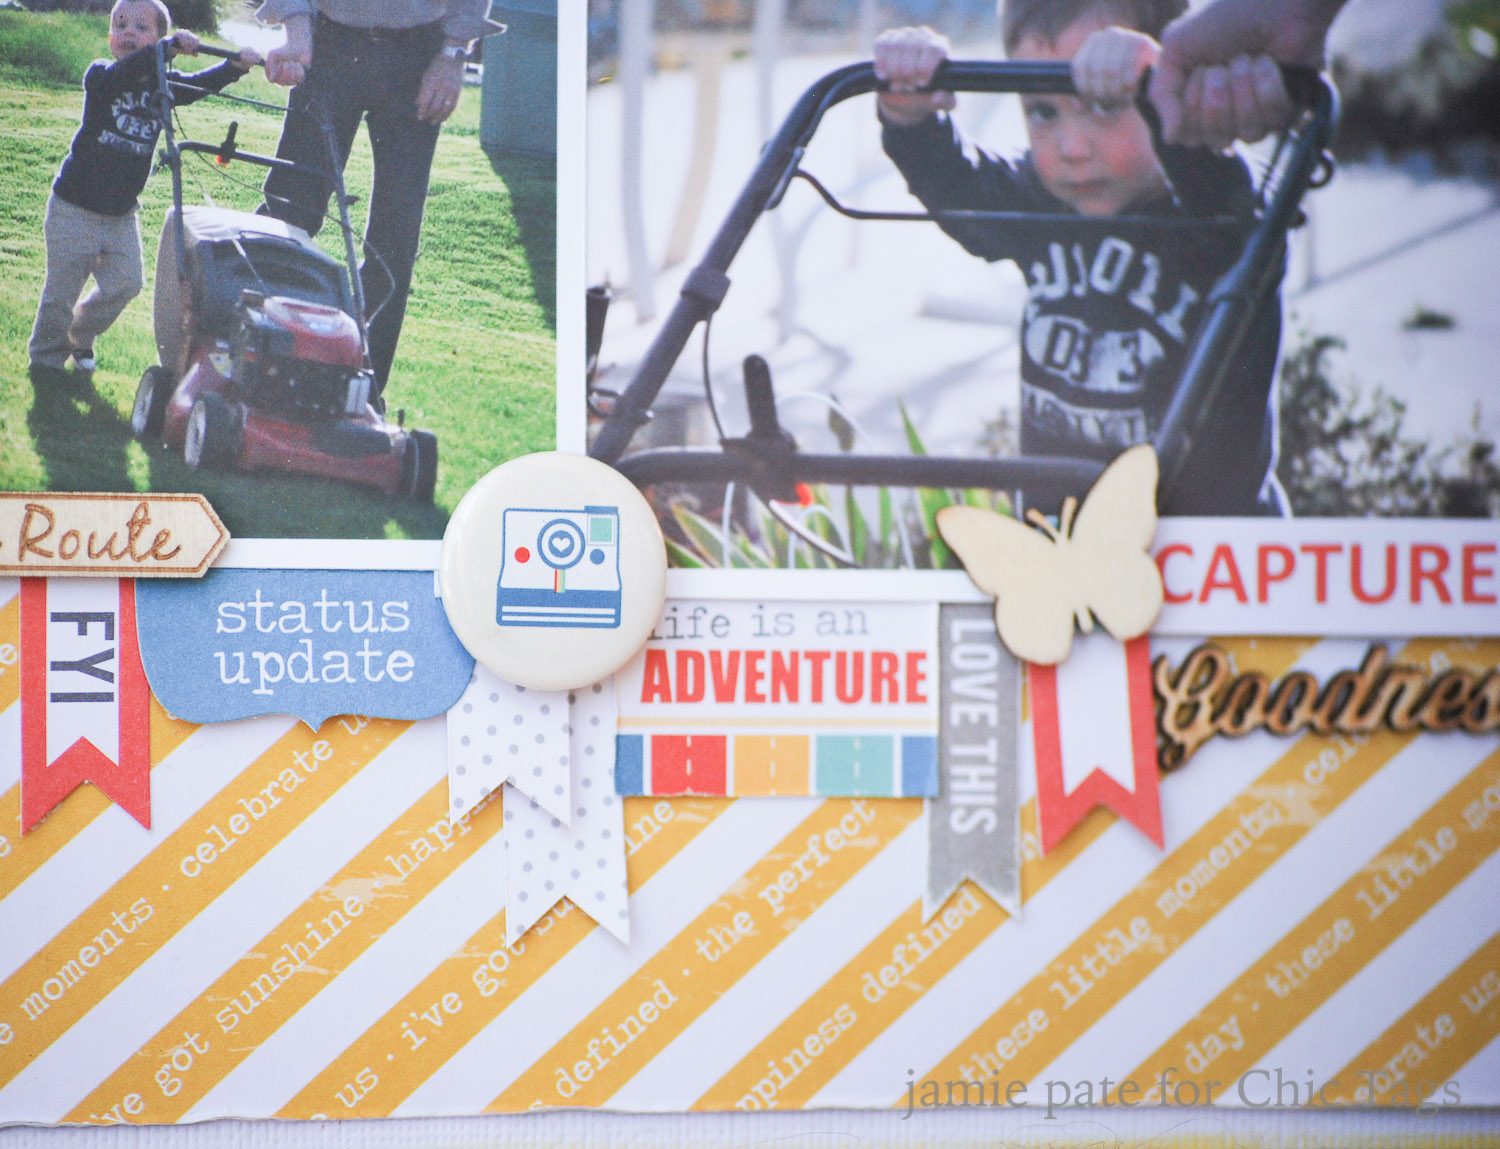 Captured! layout for Chic Tags by jamie pate